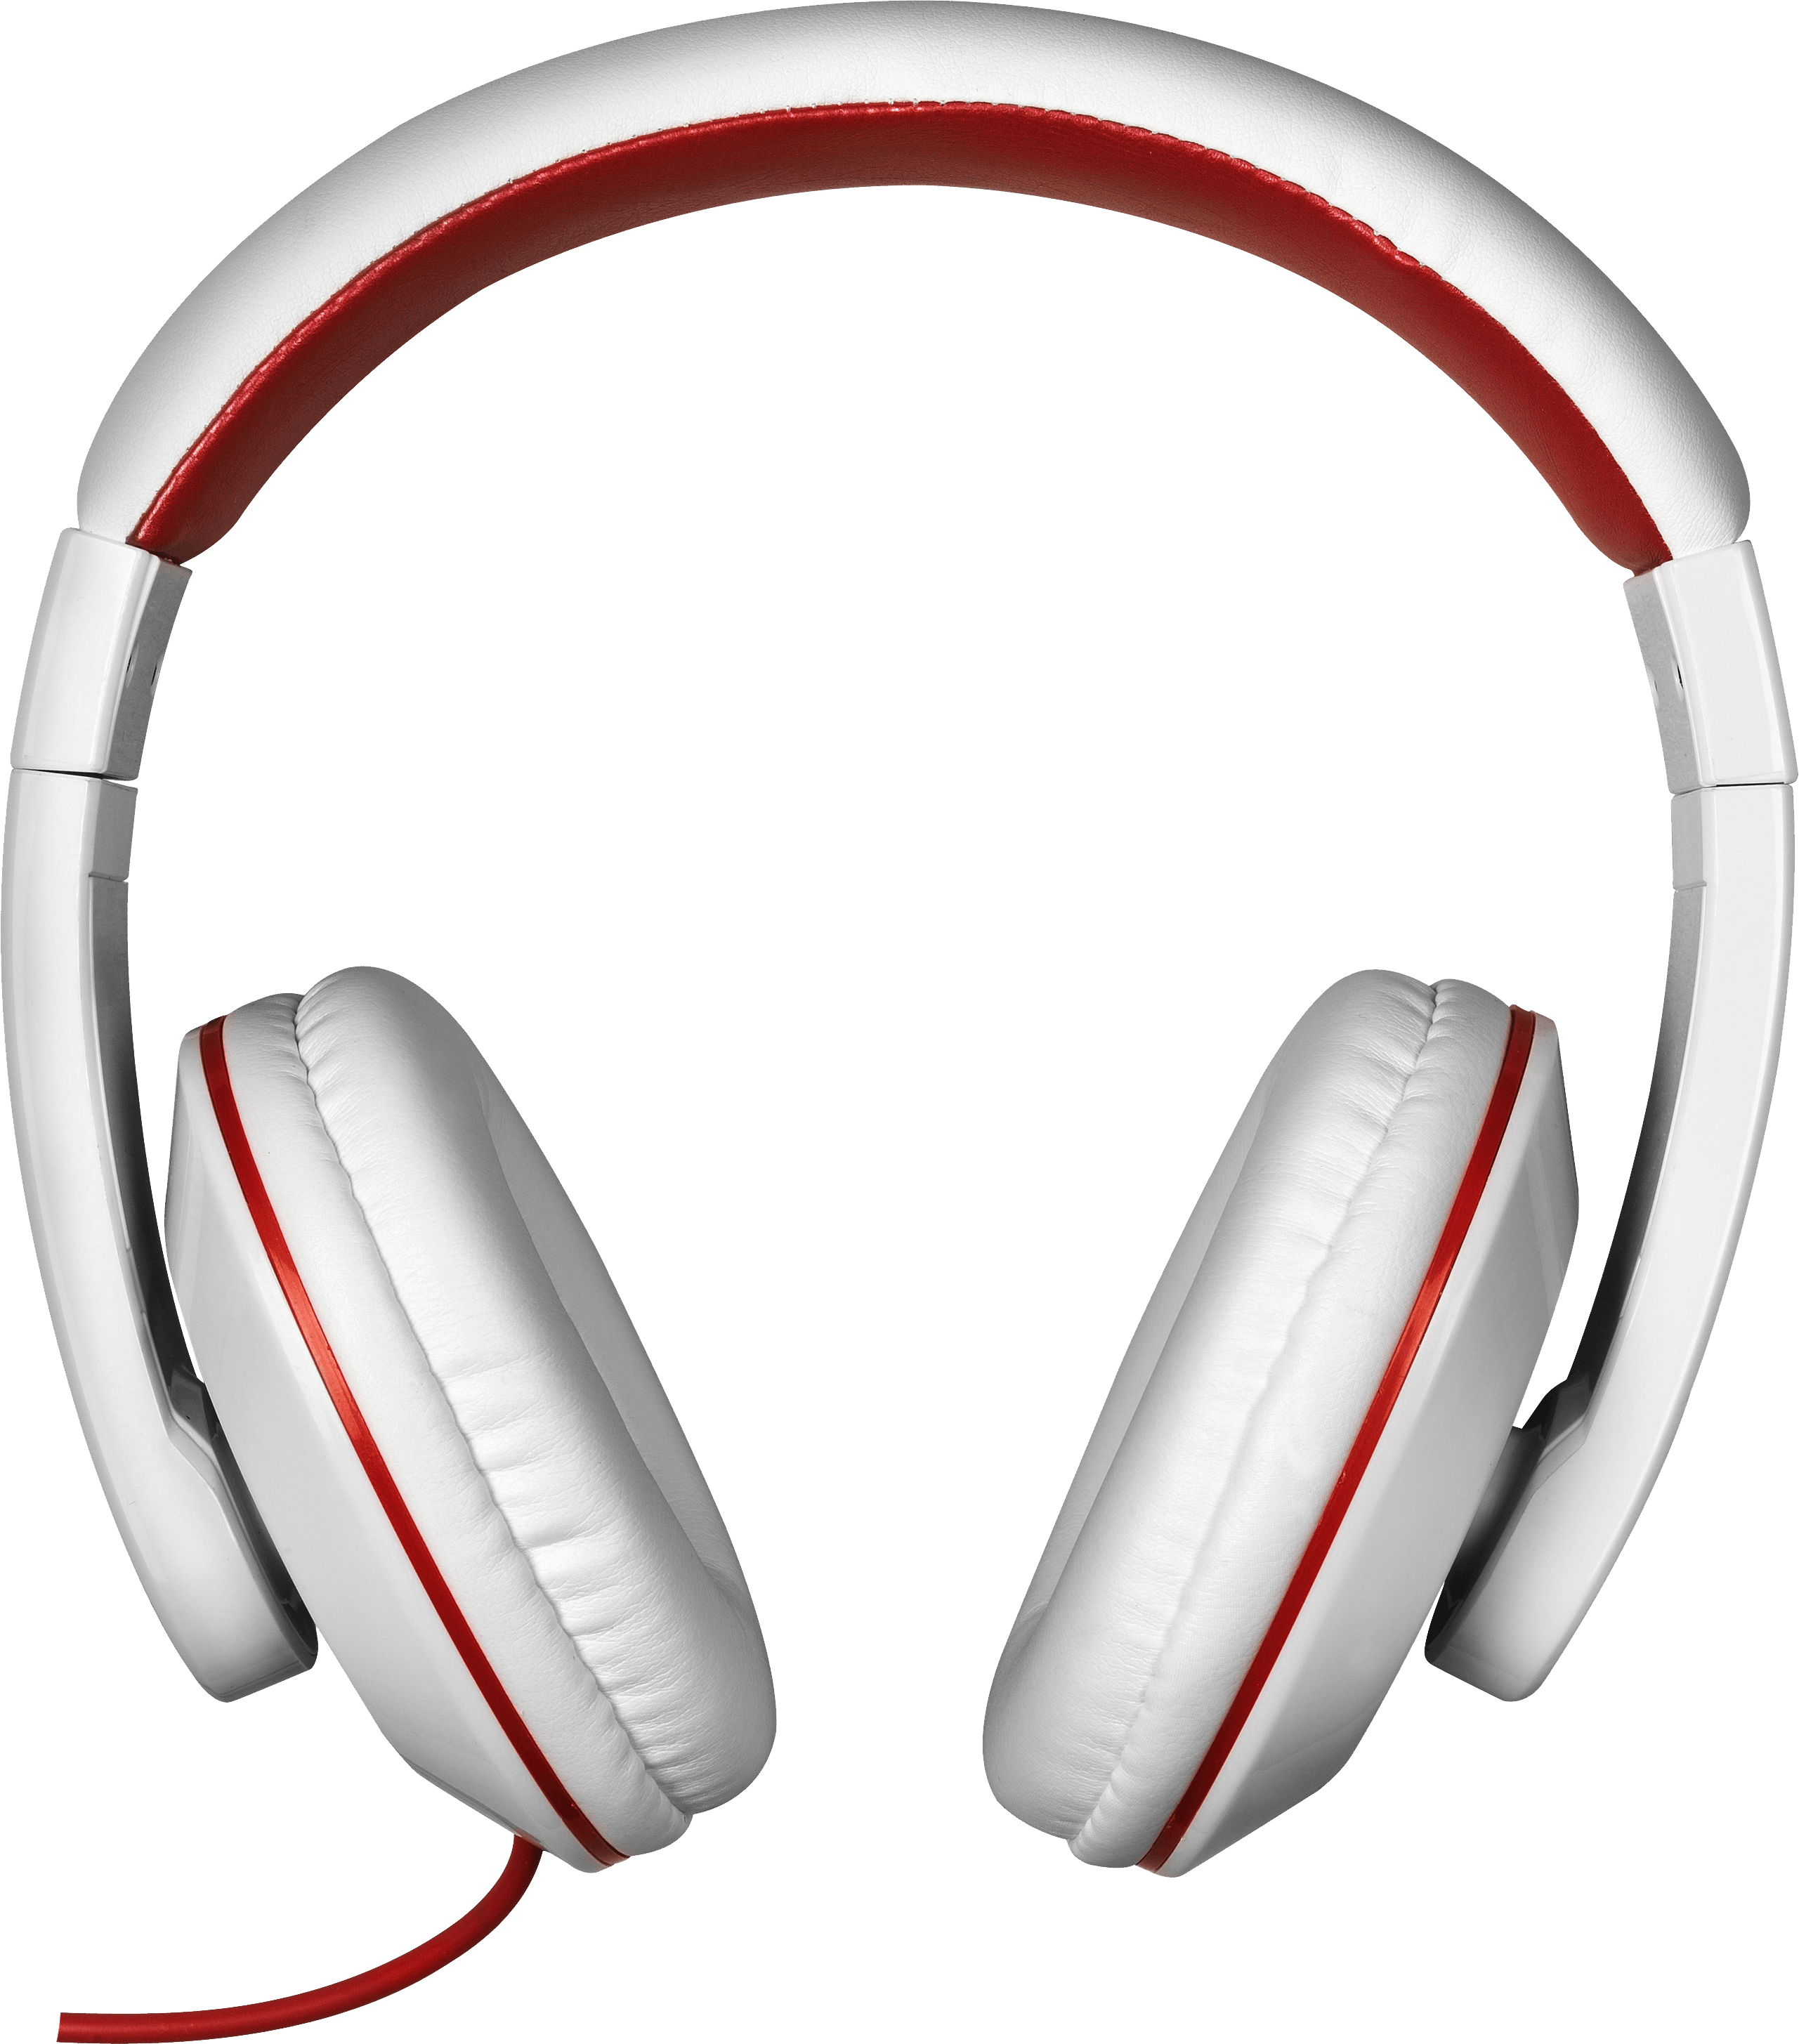 Png headphones. Red white transparent stickpng